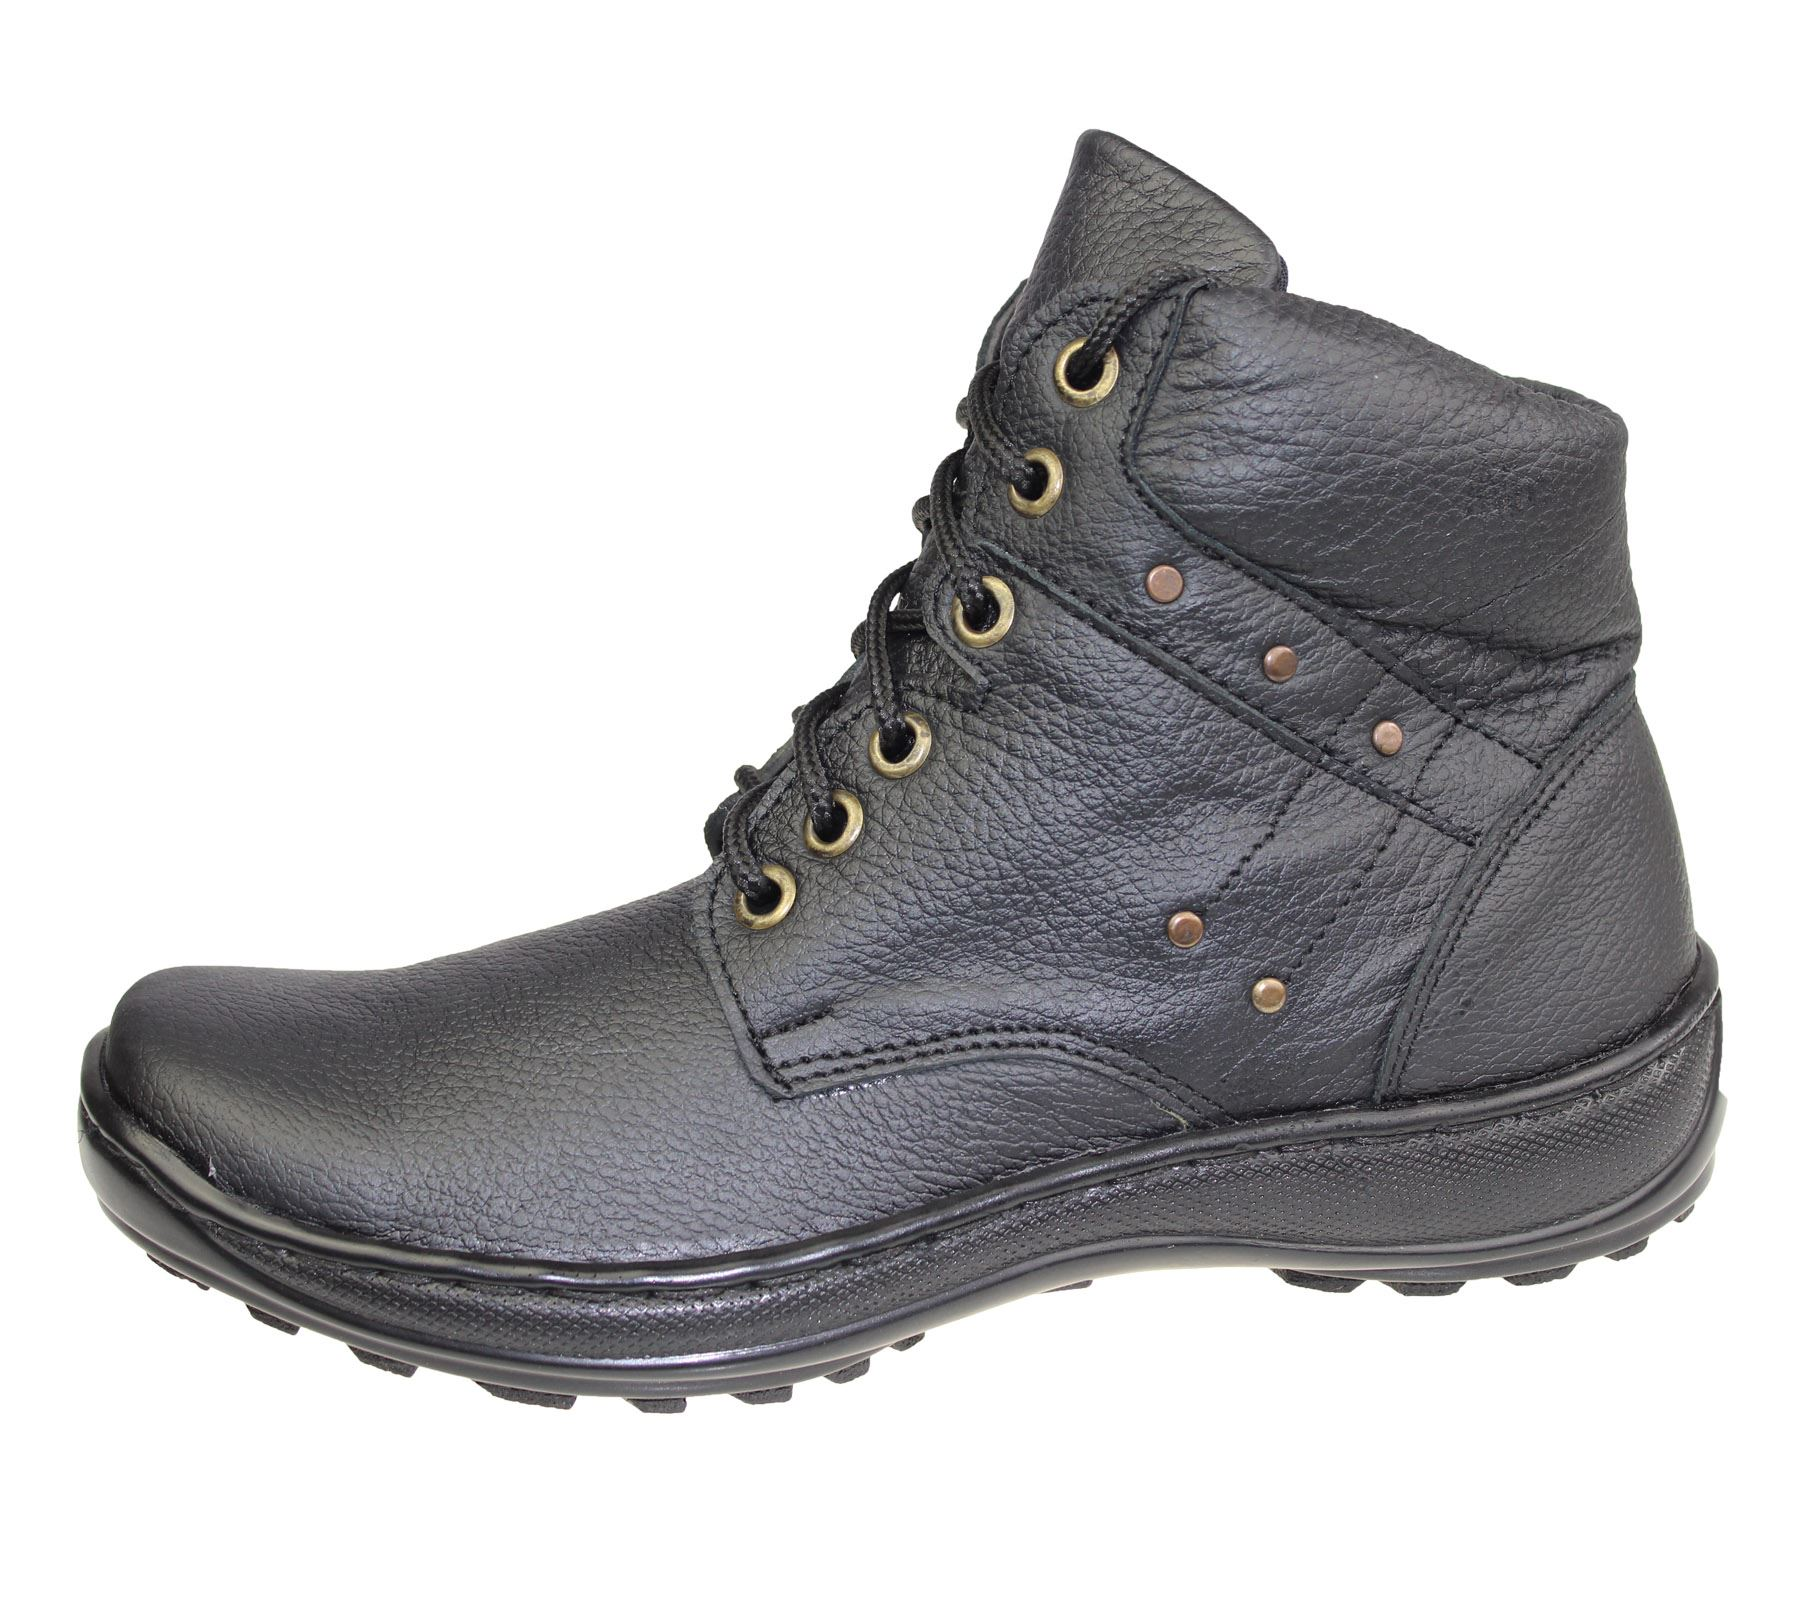 mens leather work boots lace up high top ankle hiking